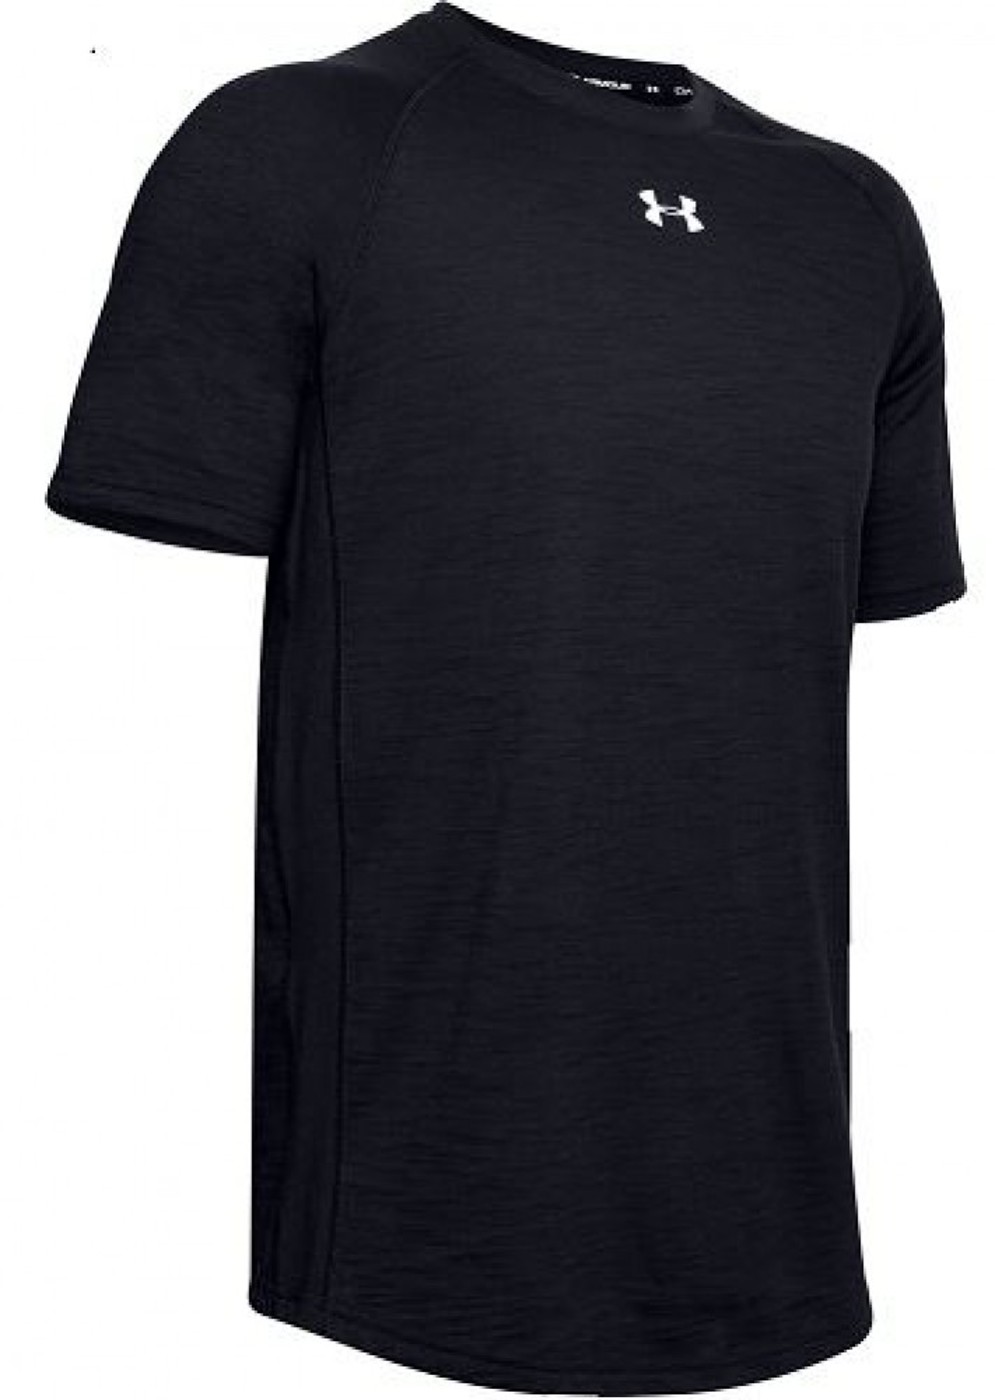 UNDER ARMOUR Charged Cotton SS - Herren